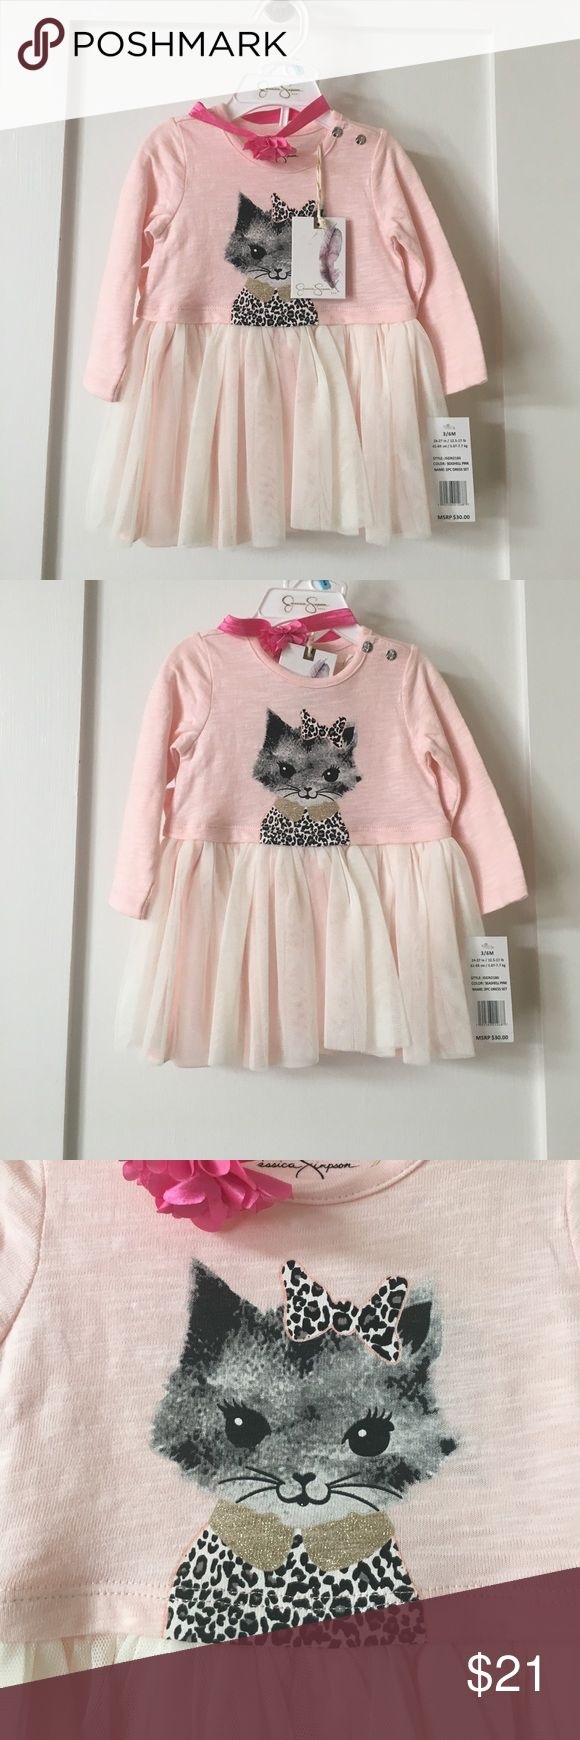 Jessica Simpson Newborn Dress * NWT * Jessica Simpson baby girl dress and bloomer set. Cat print with jungle cat design. Add on flower headband! Ages 3/6 months. Color is seashell pink with gold touches Jessica Simpson Matching Sets